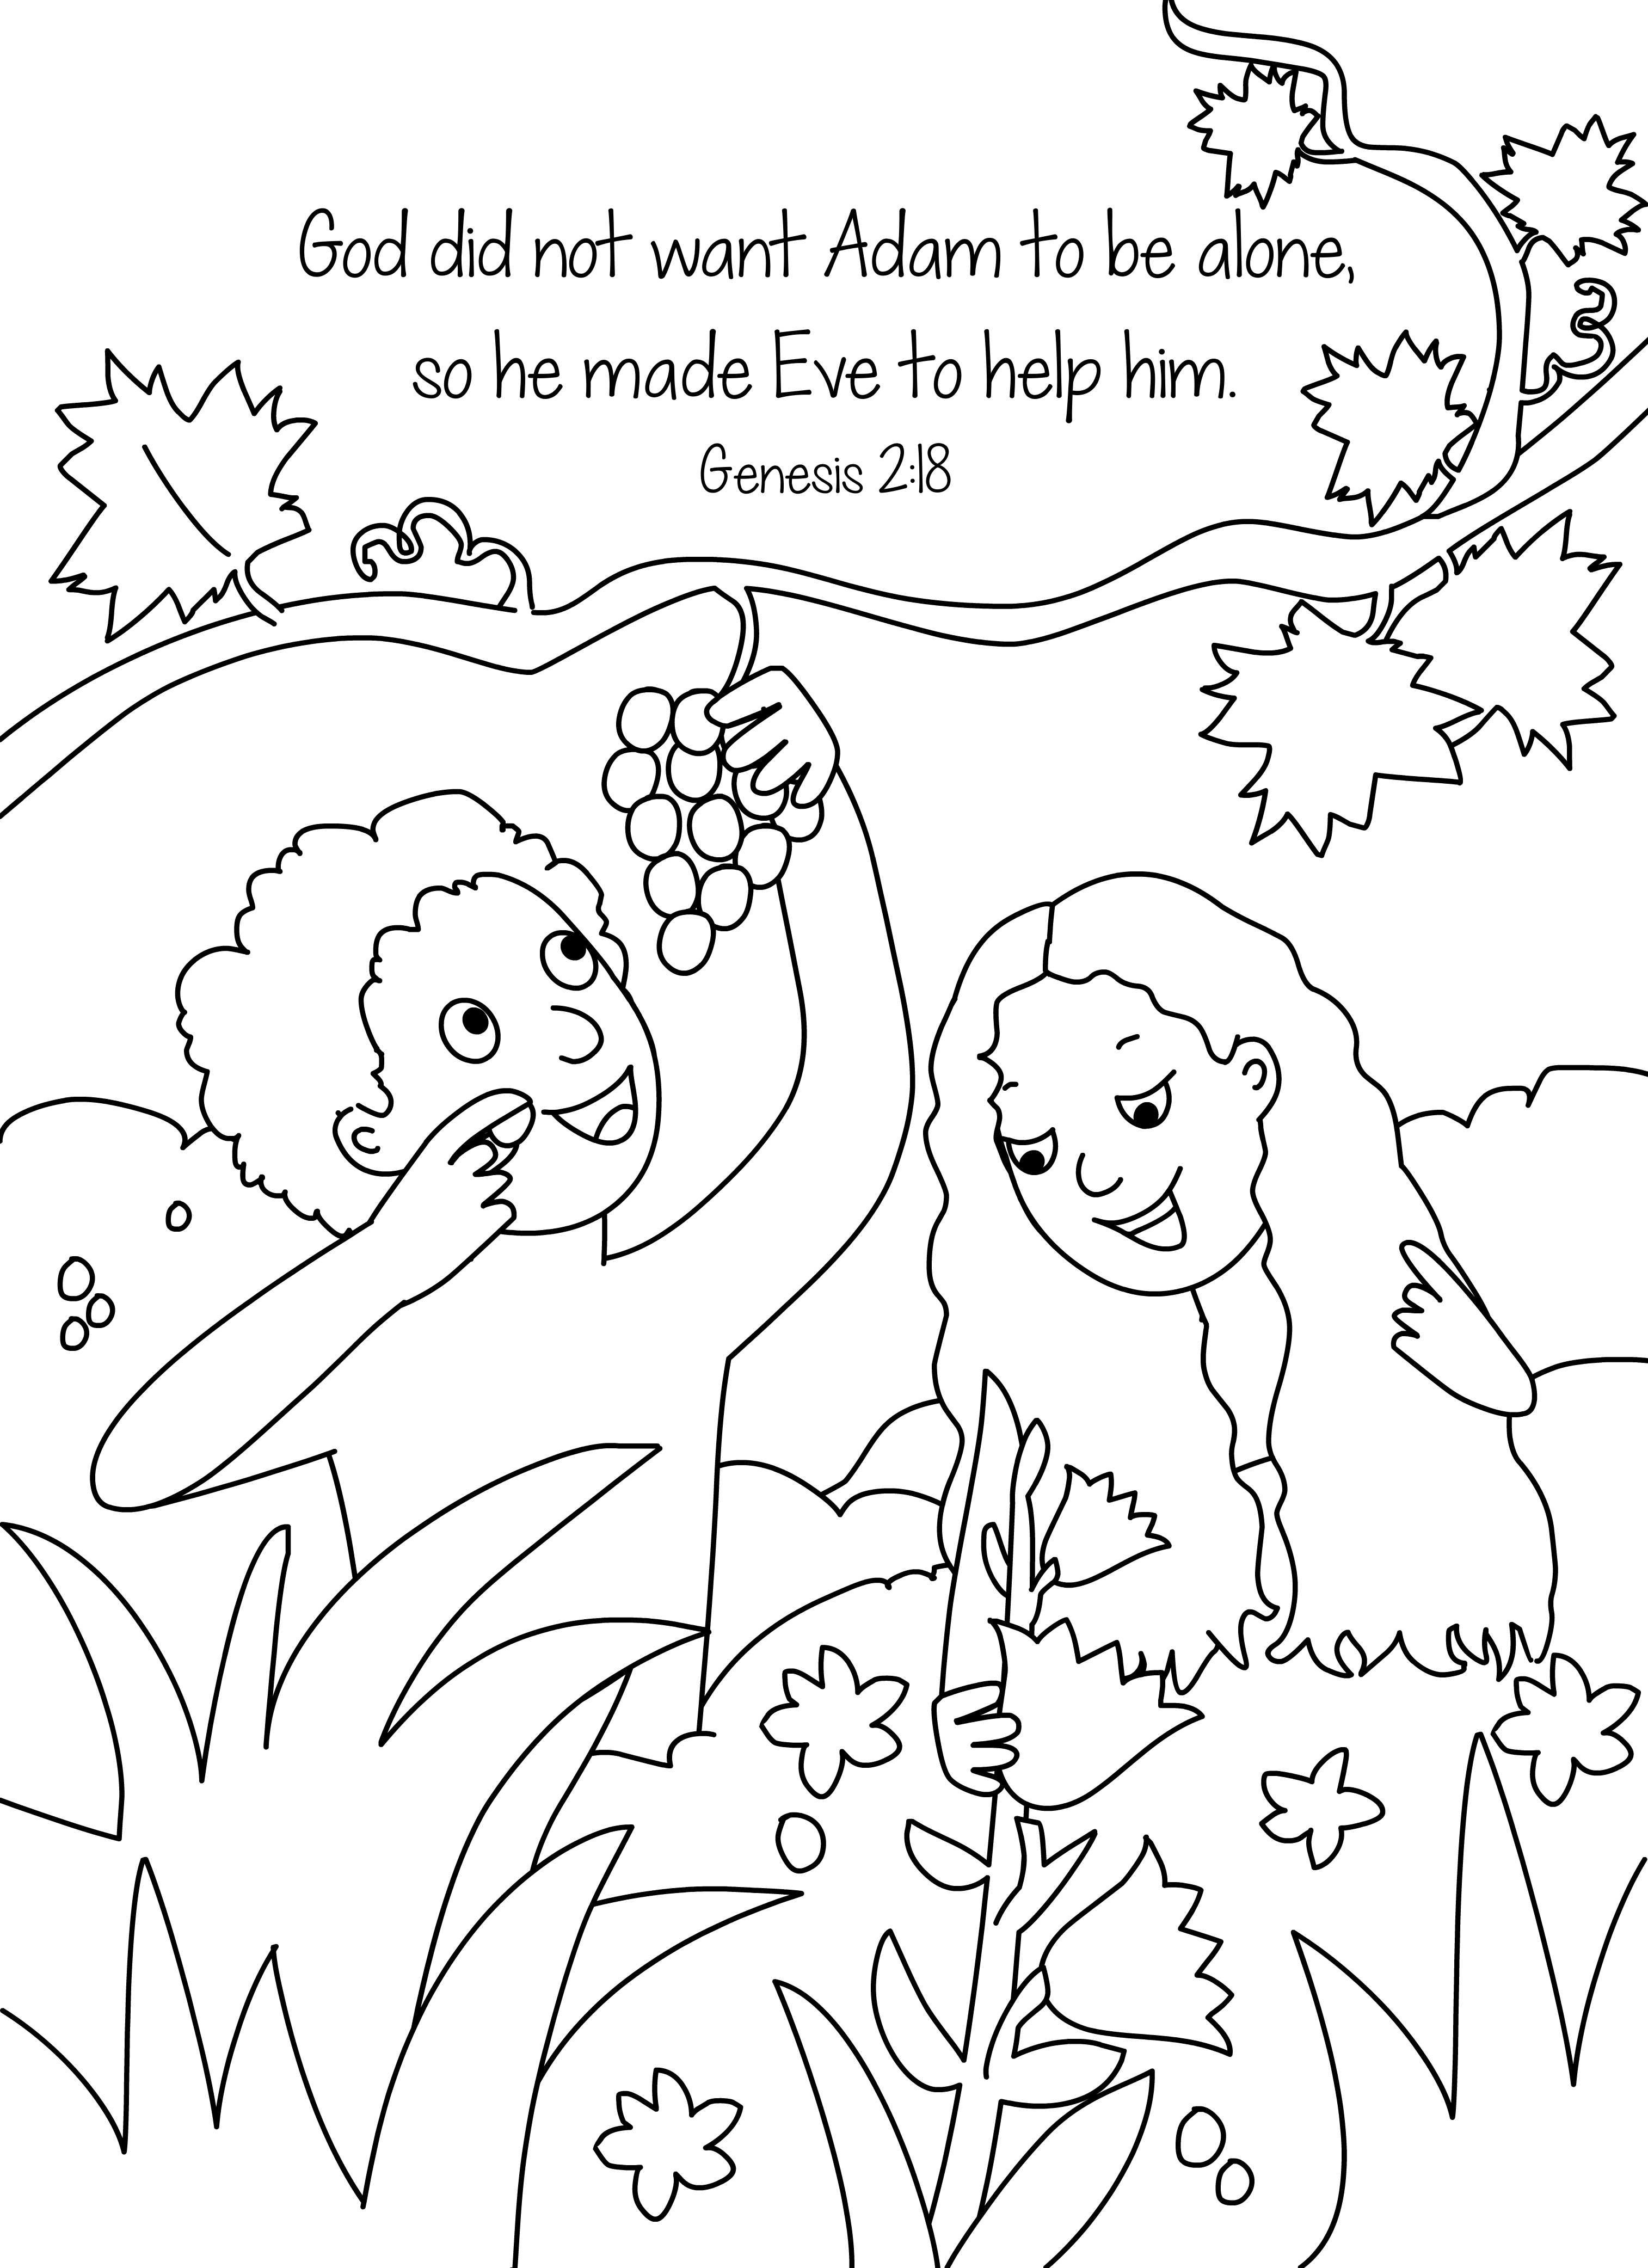 adam and eve coloring pages for preschool Collection-Adam and Eve Coloring Pages for Kids Free Adam and Eve Coloring Pages Lovely Adam and 4-i